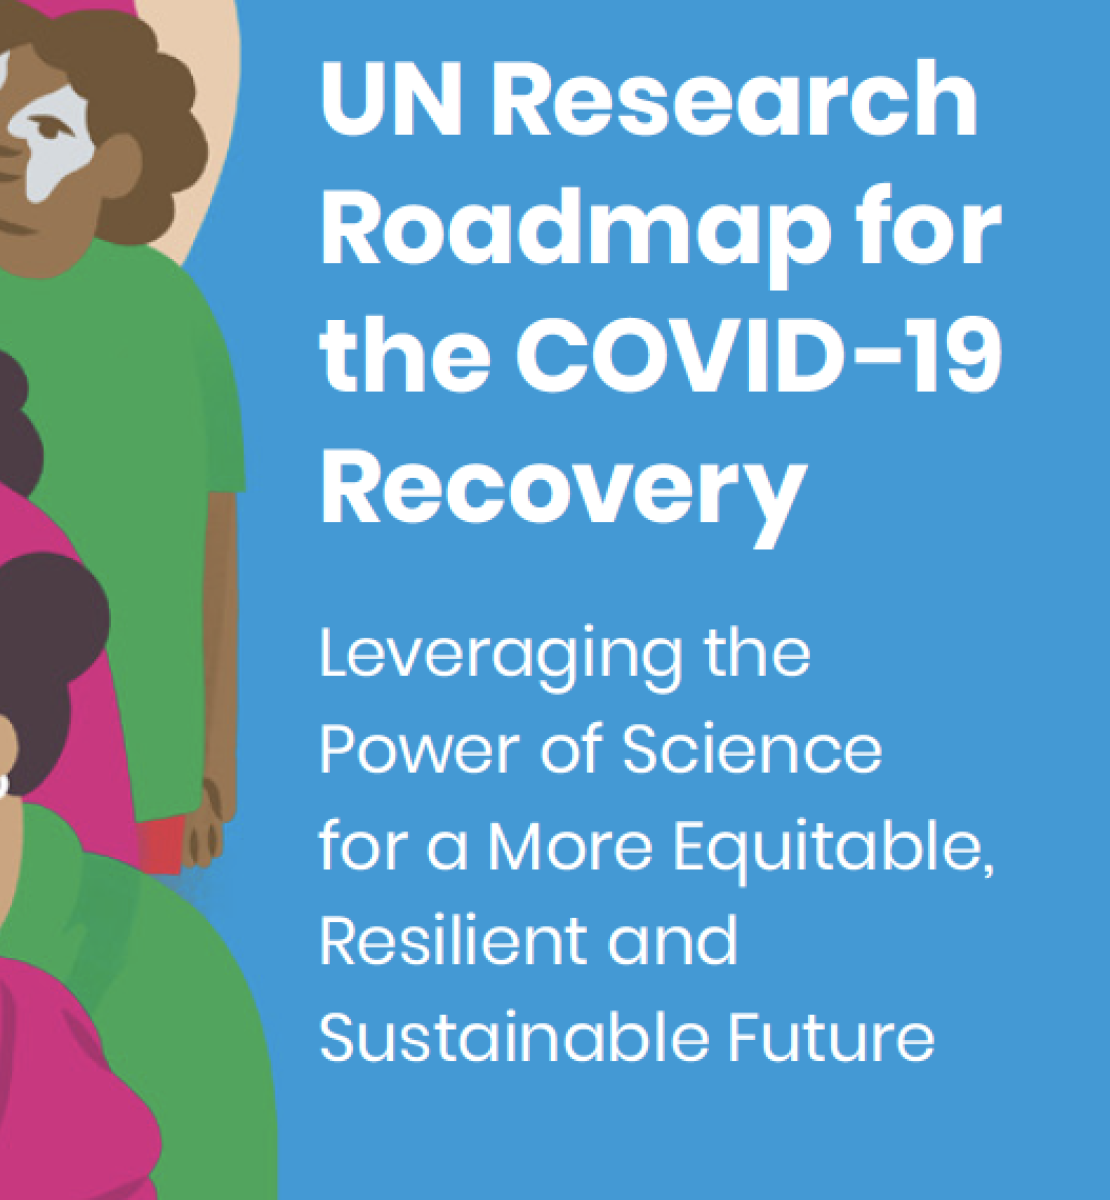 Shows a group of diverse animated people to the left with the UN Roadmap title over blue to the right of the images.